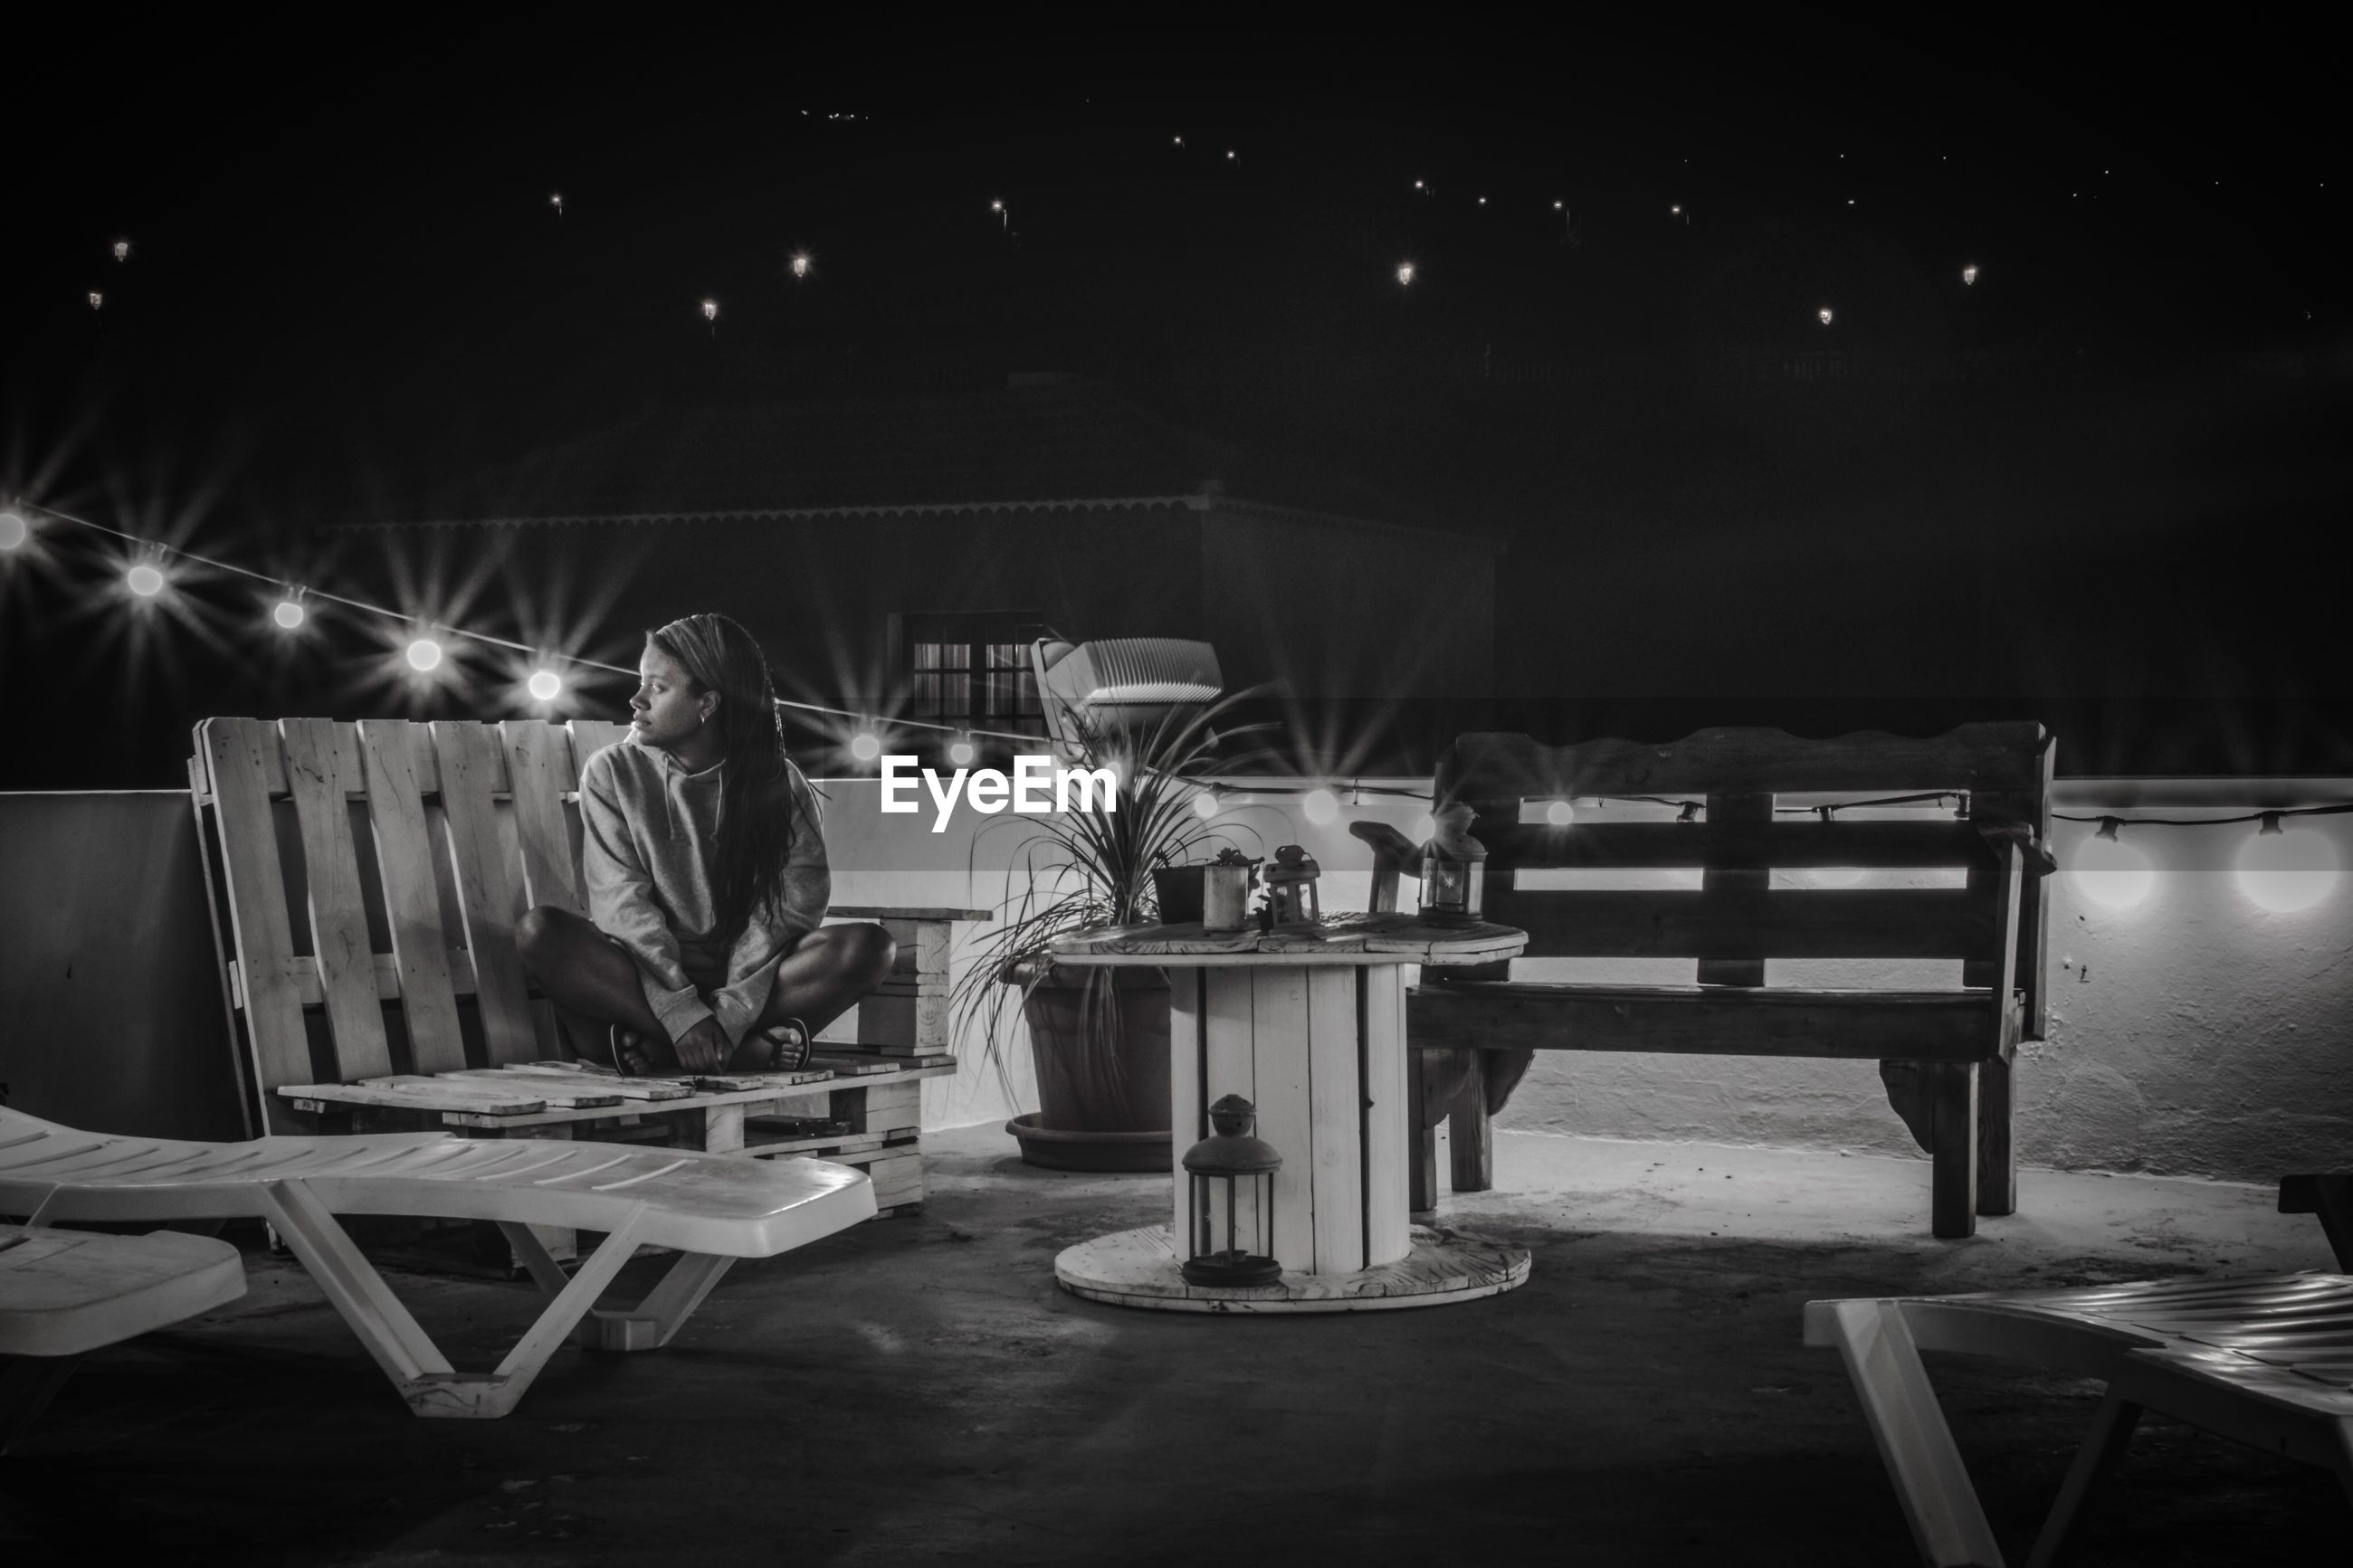 Woman sitting on bench against sky at night